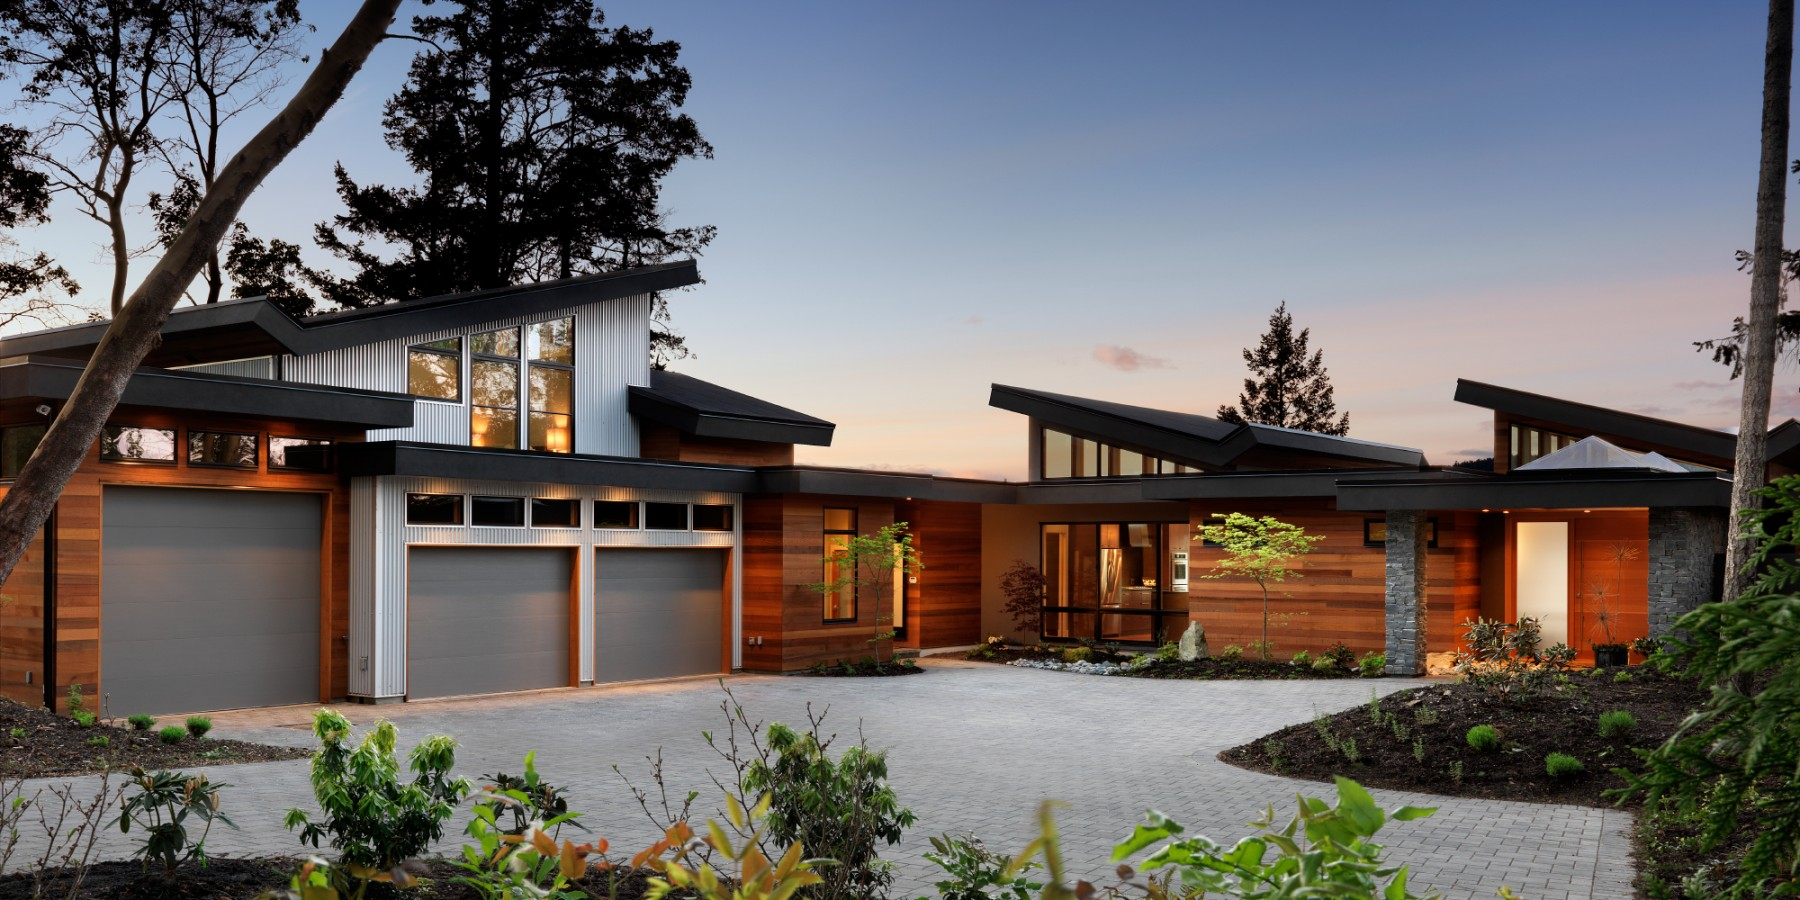 Kb design keith baker custom home design victoria vancouver island Custom home designs